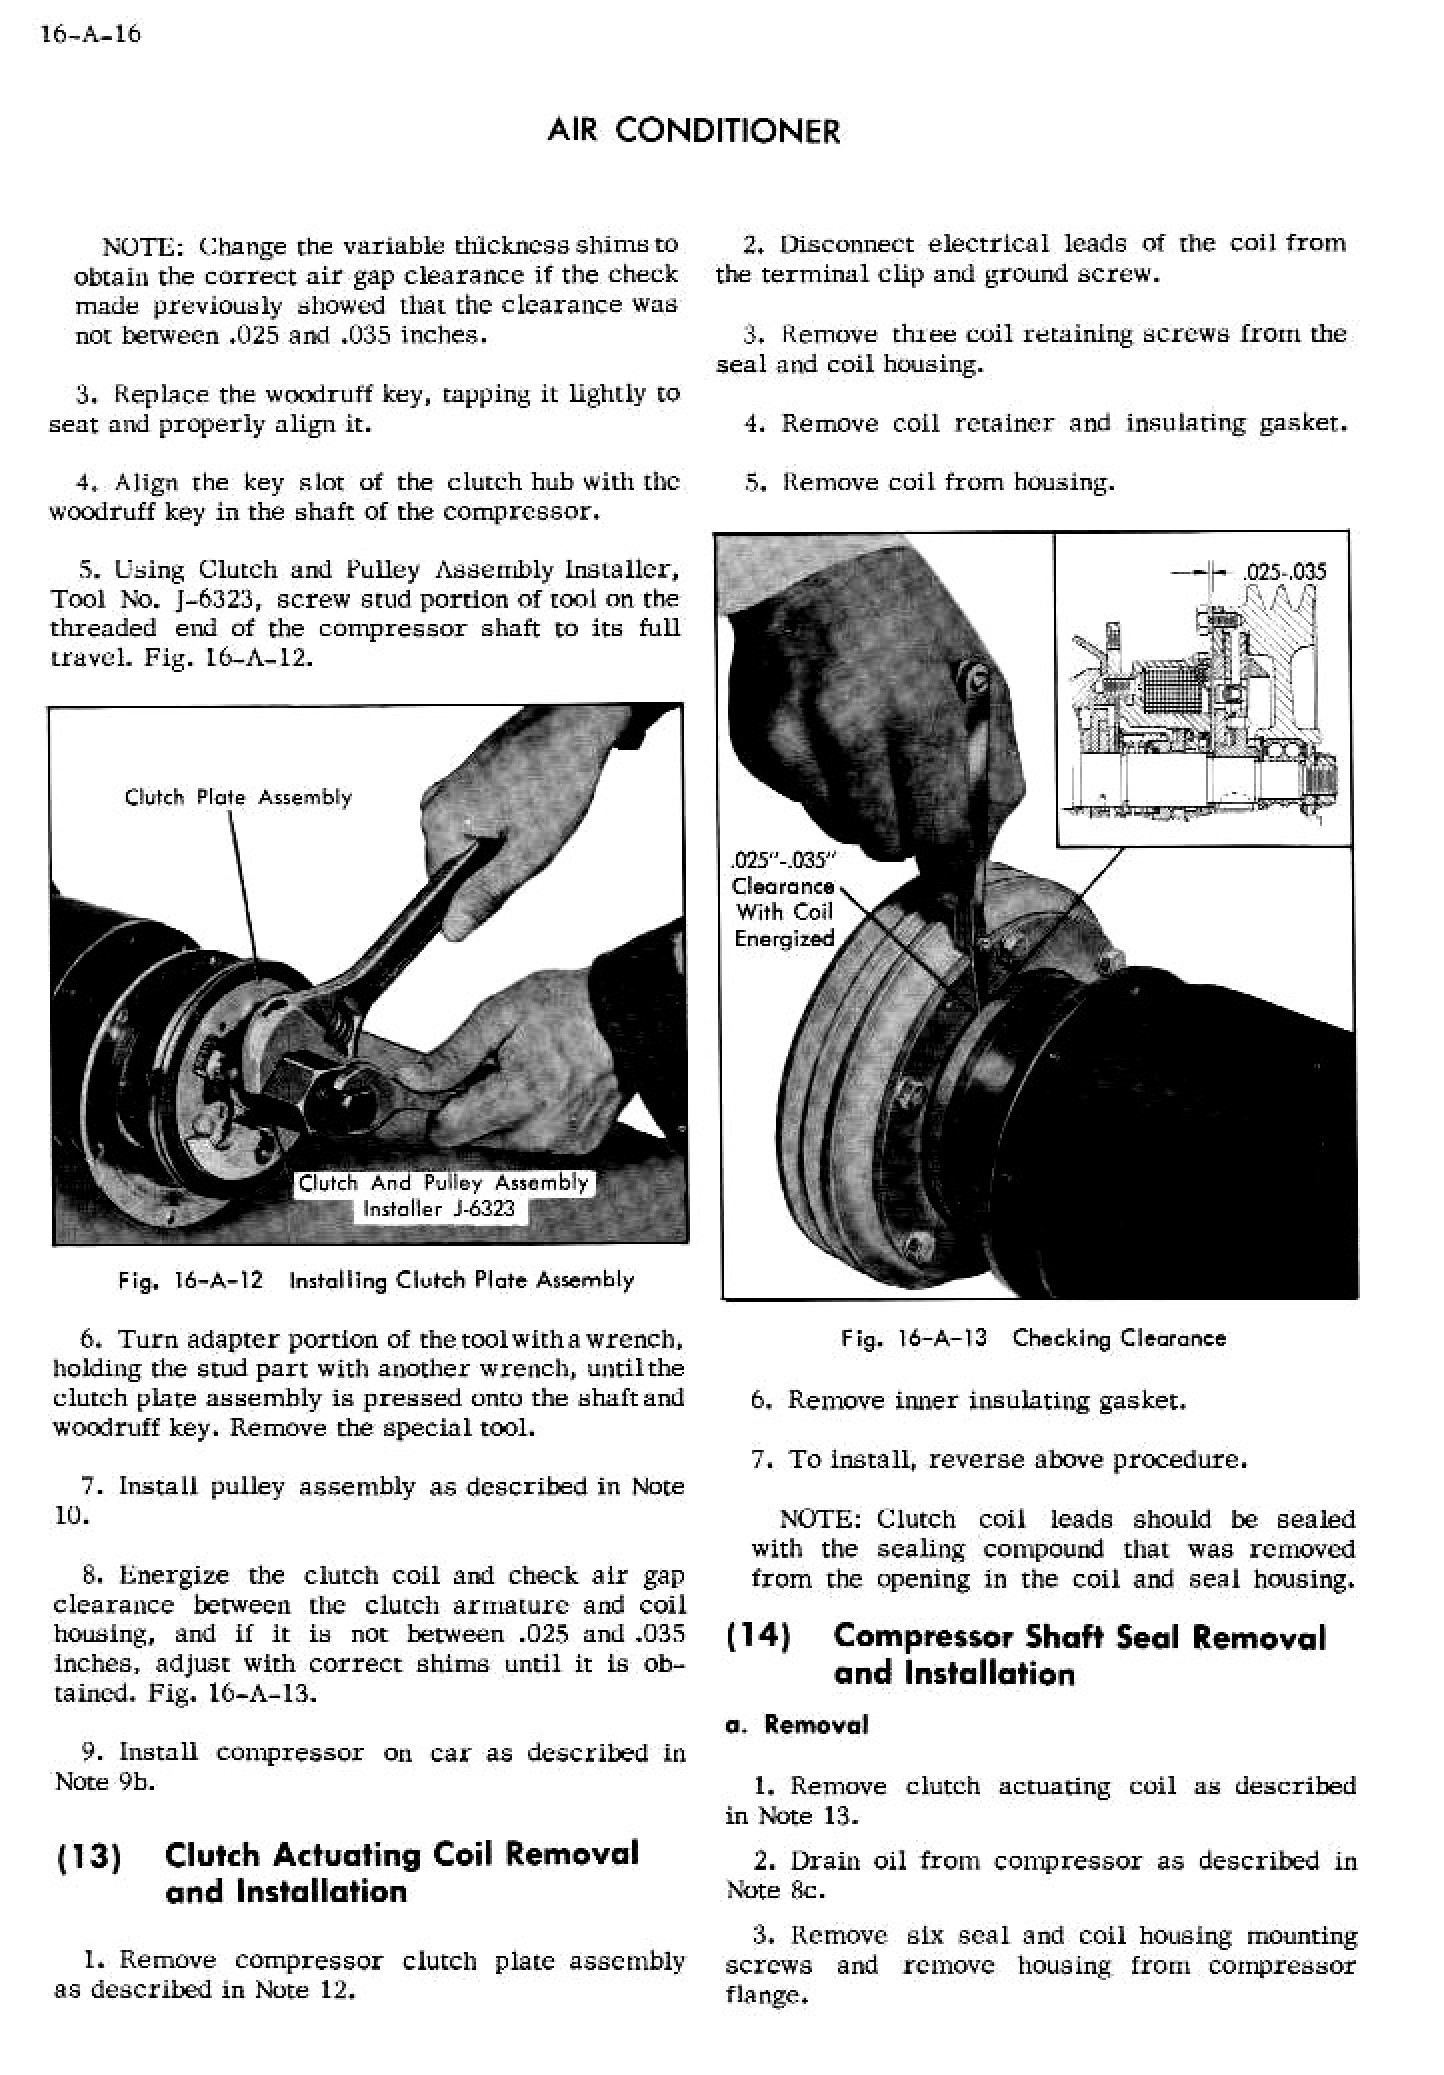 1956 Cadillac Shop Manual- Accessories Page 16 of 45